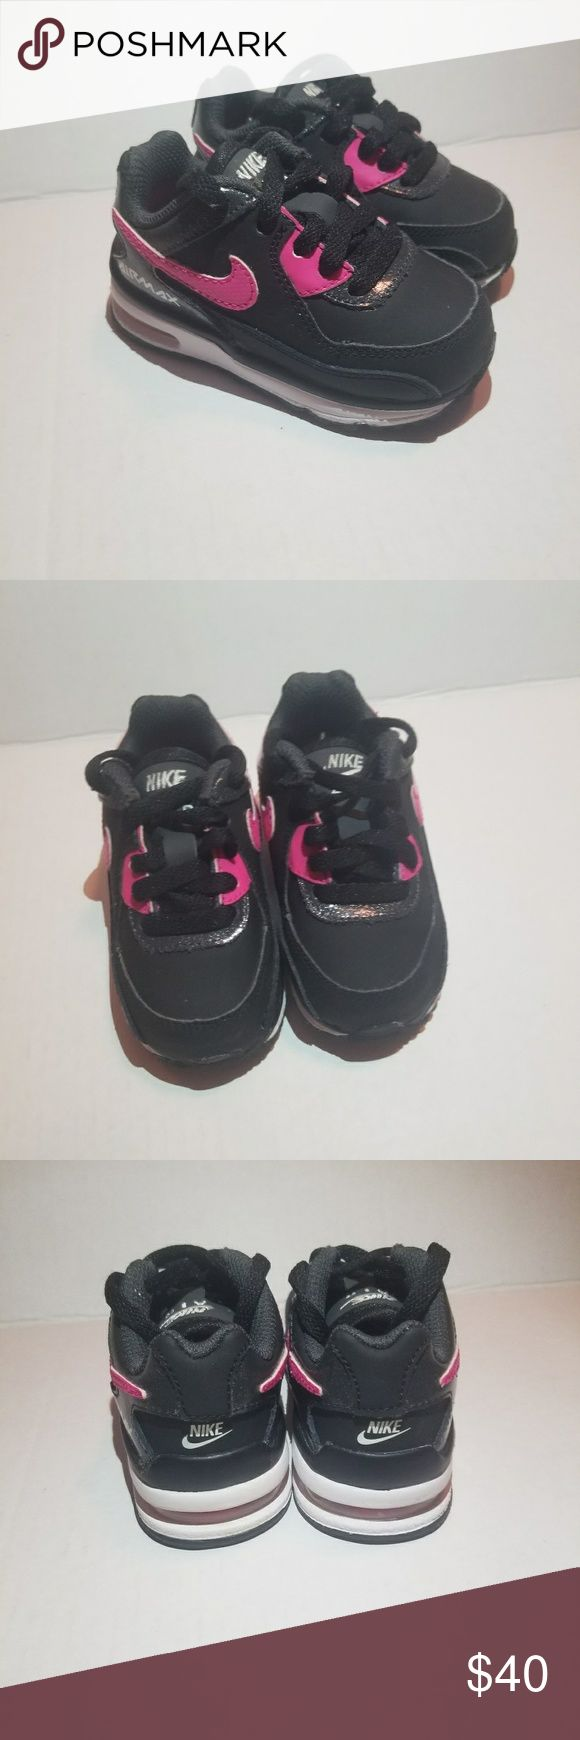 Kids Nike Air Max Wright LTD Sneakers Excellent Condition! Like New! Nike Shoes Sneakers